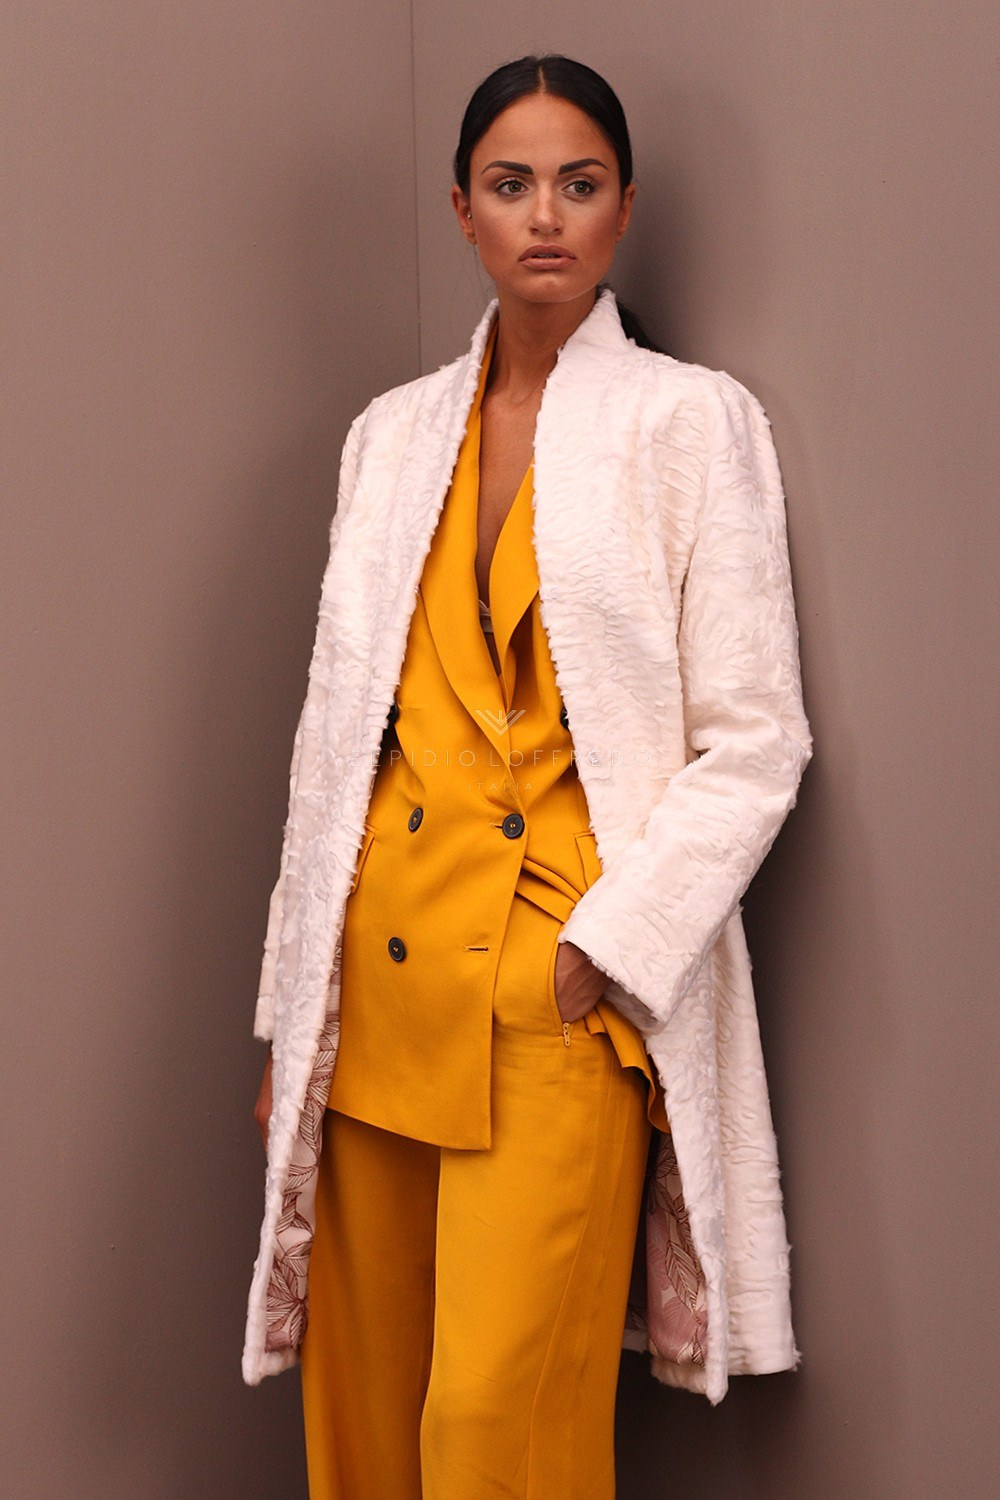 White Swakara Coat - Length 95 cm